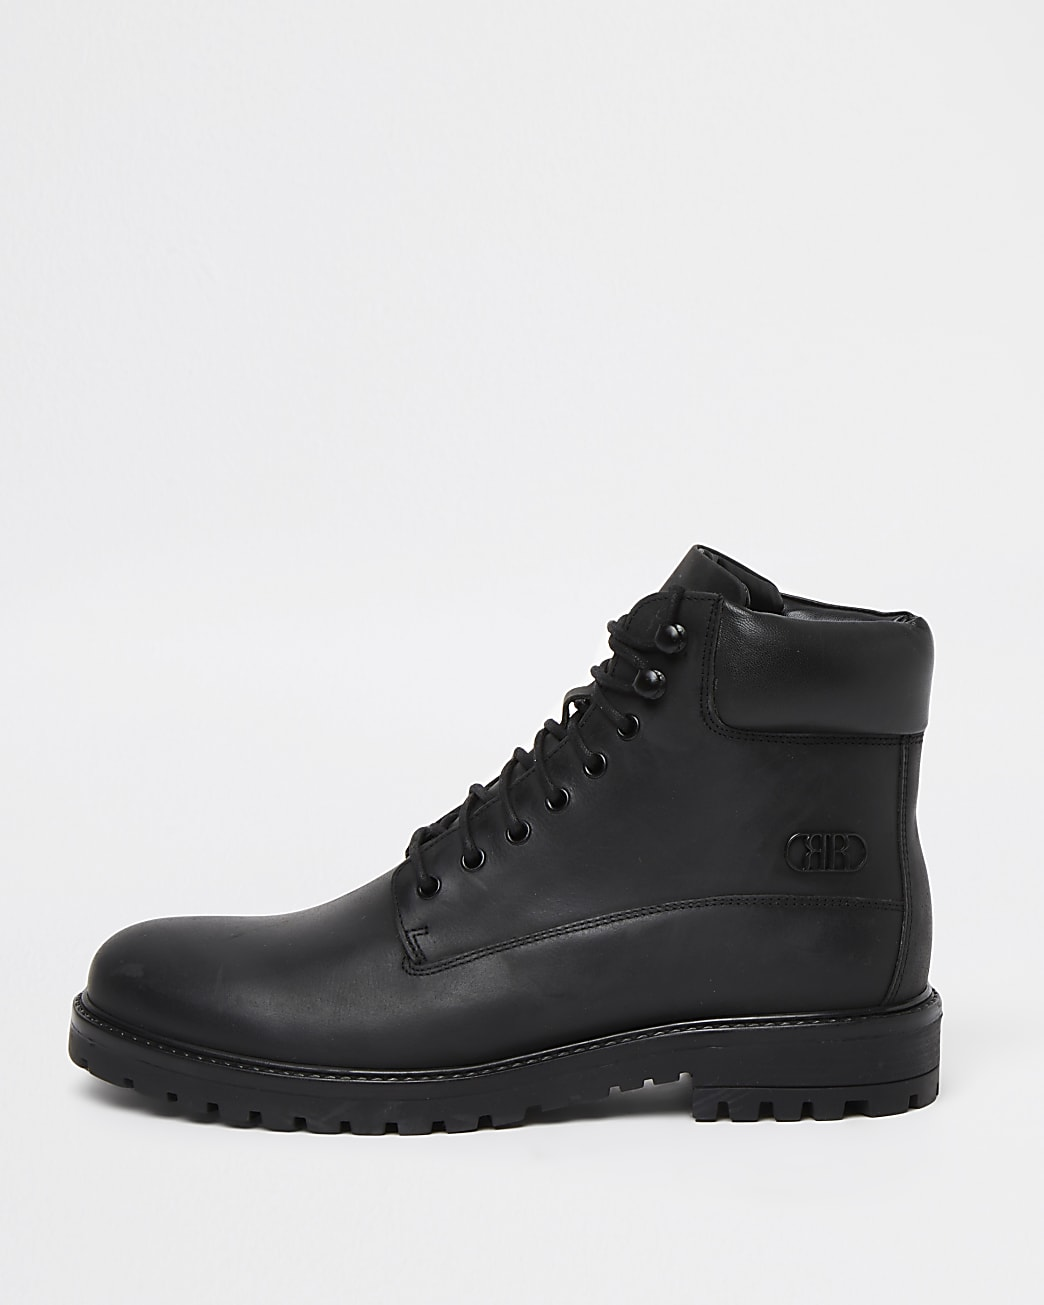 Black leather chunky lace up worker boots